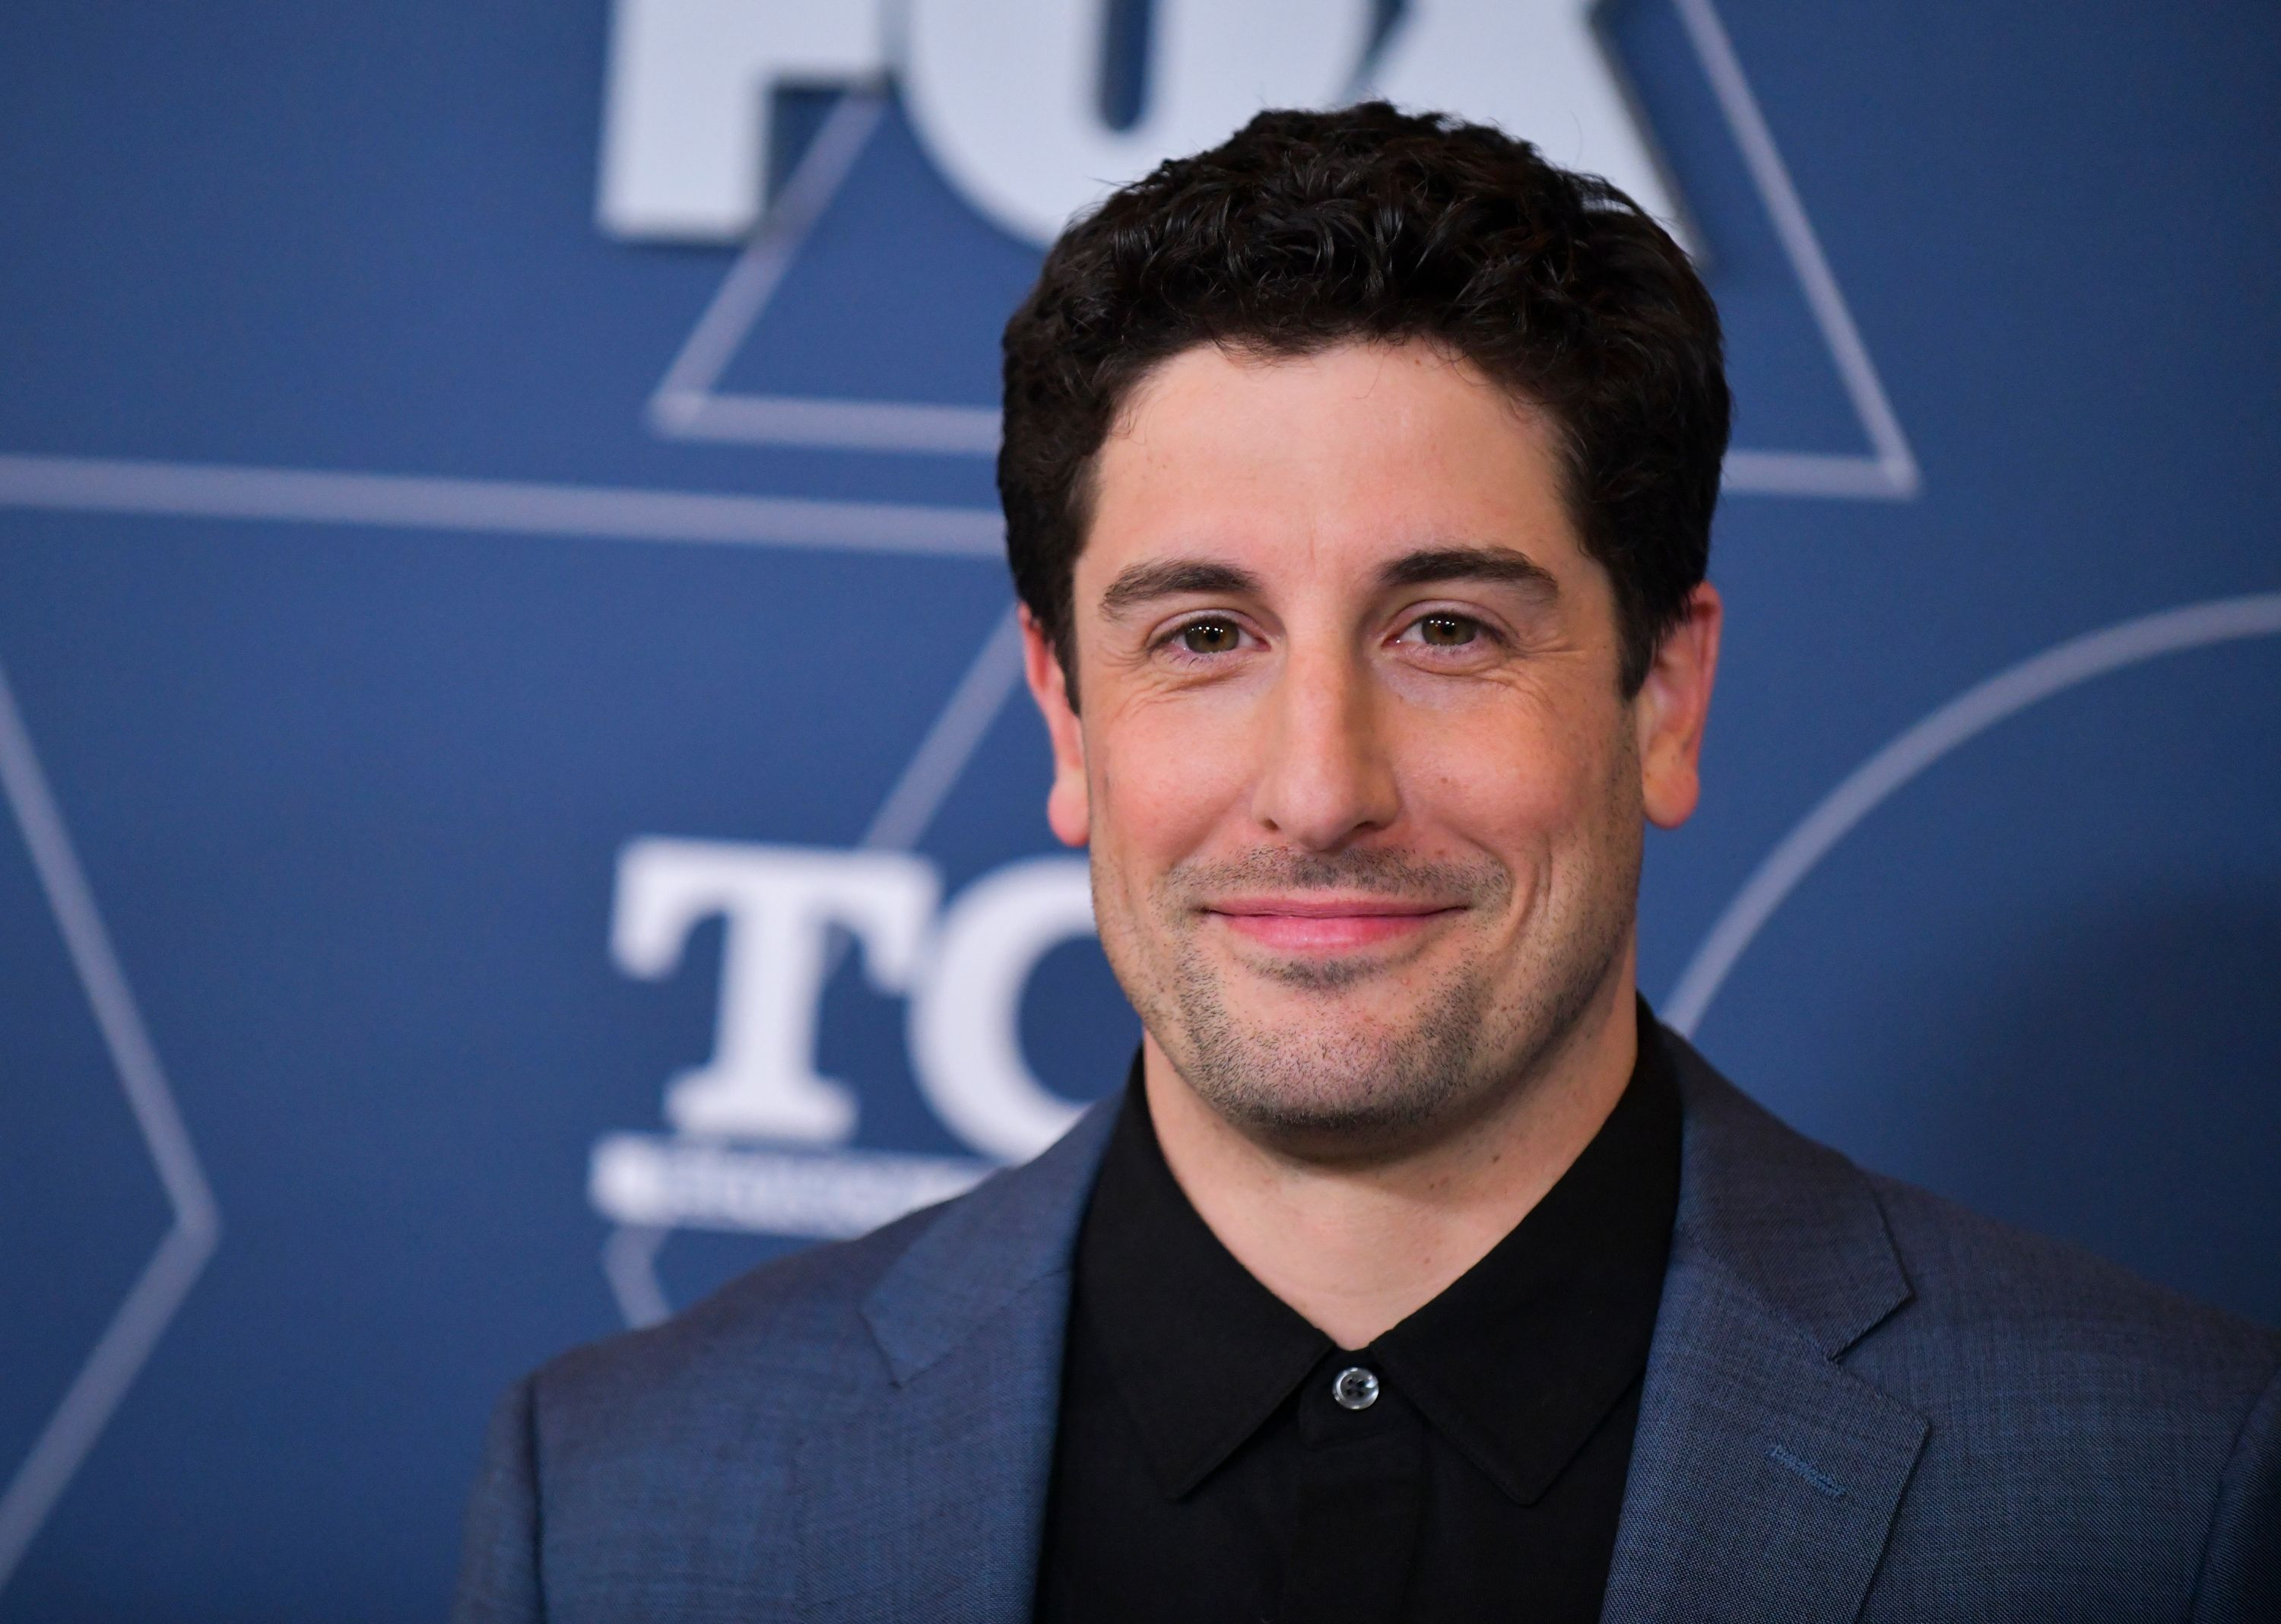 Jason Biggs attends the FOX Winter TCA All Star Party / Getty Images